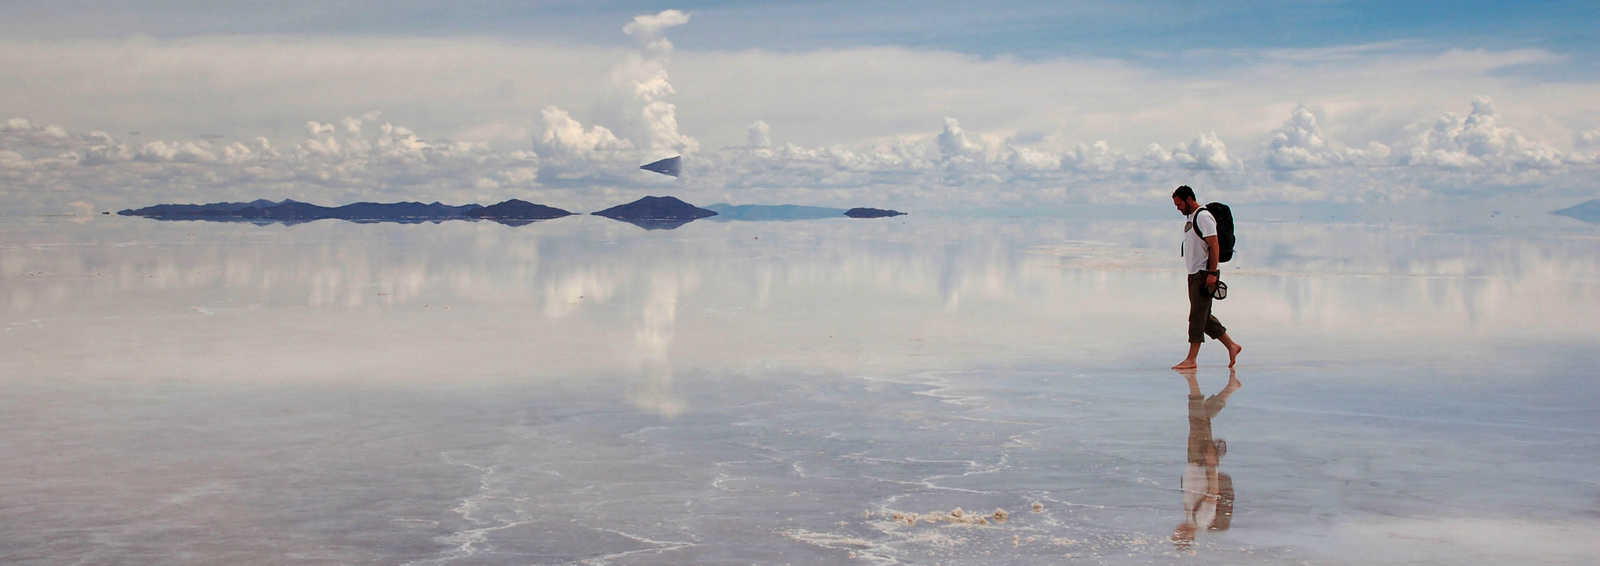 Walking over the reflective surface of the Uyuni Salt Flats, Bolivia